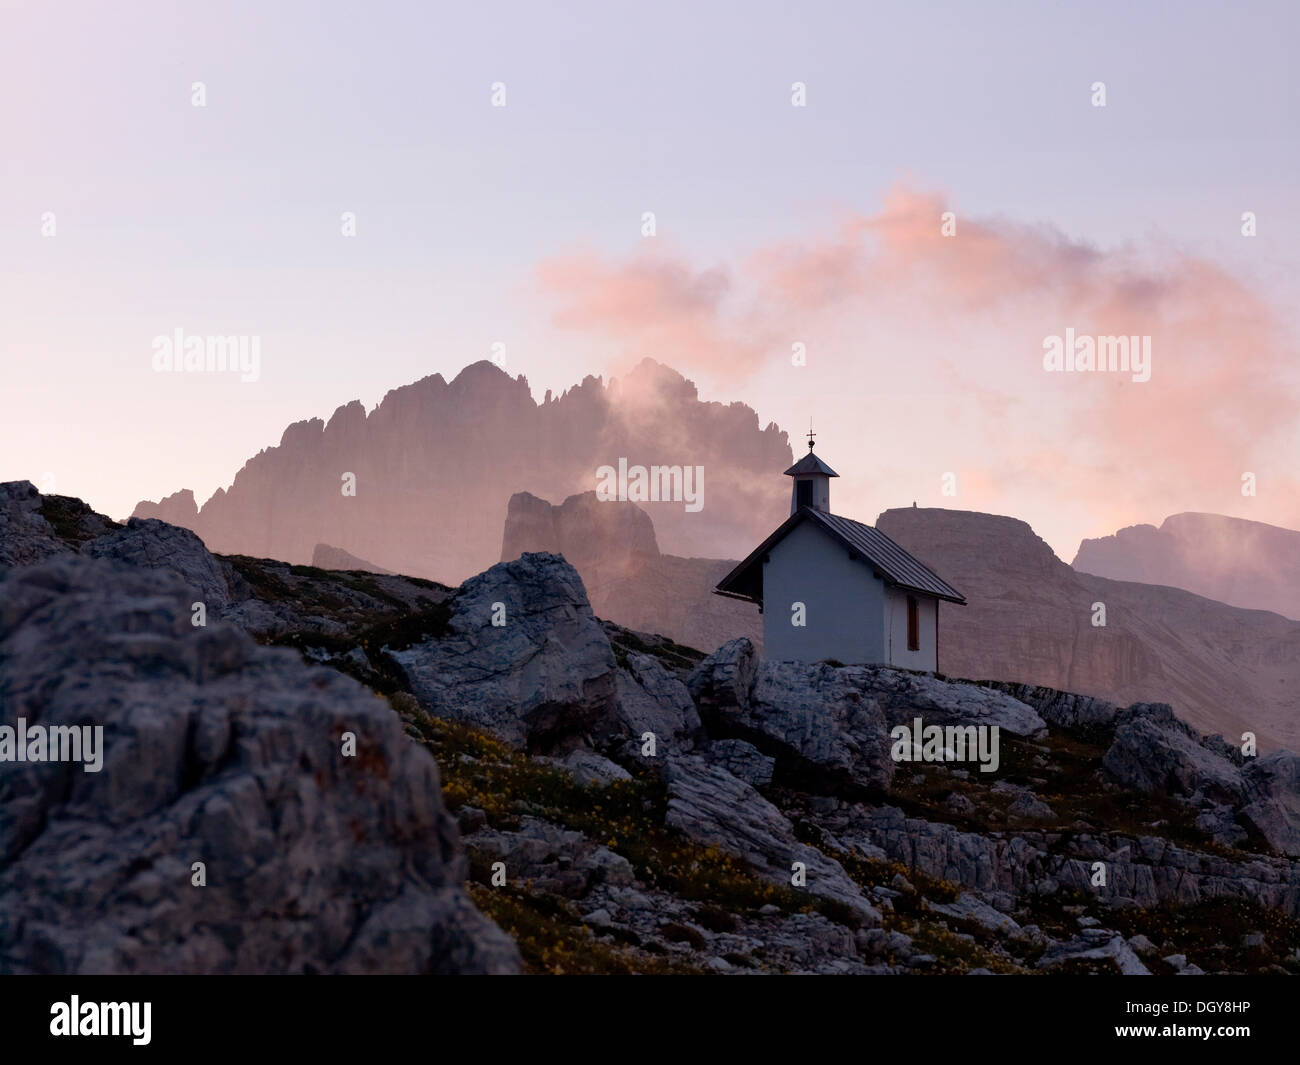 Chapel at dawn, Dolomiti di Sesto National Park, Sexten Dolomites, Hochpustertal, High Puster Valley, South Tyrol, Italy, Europe - Stock Image